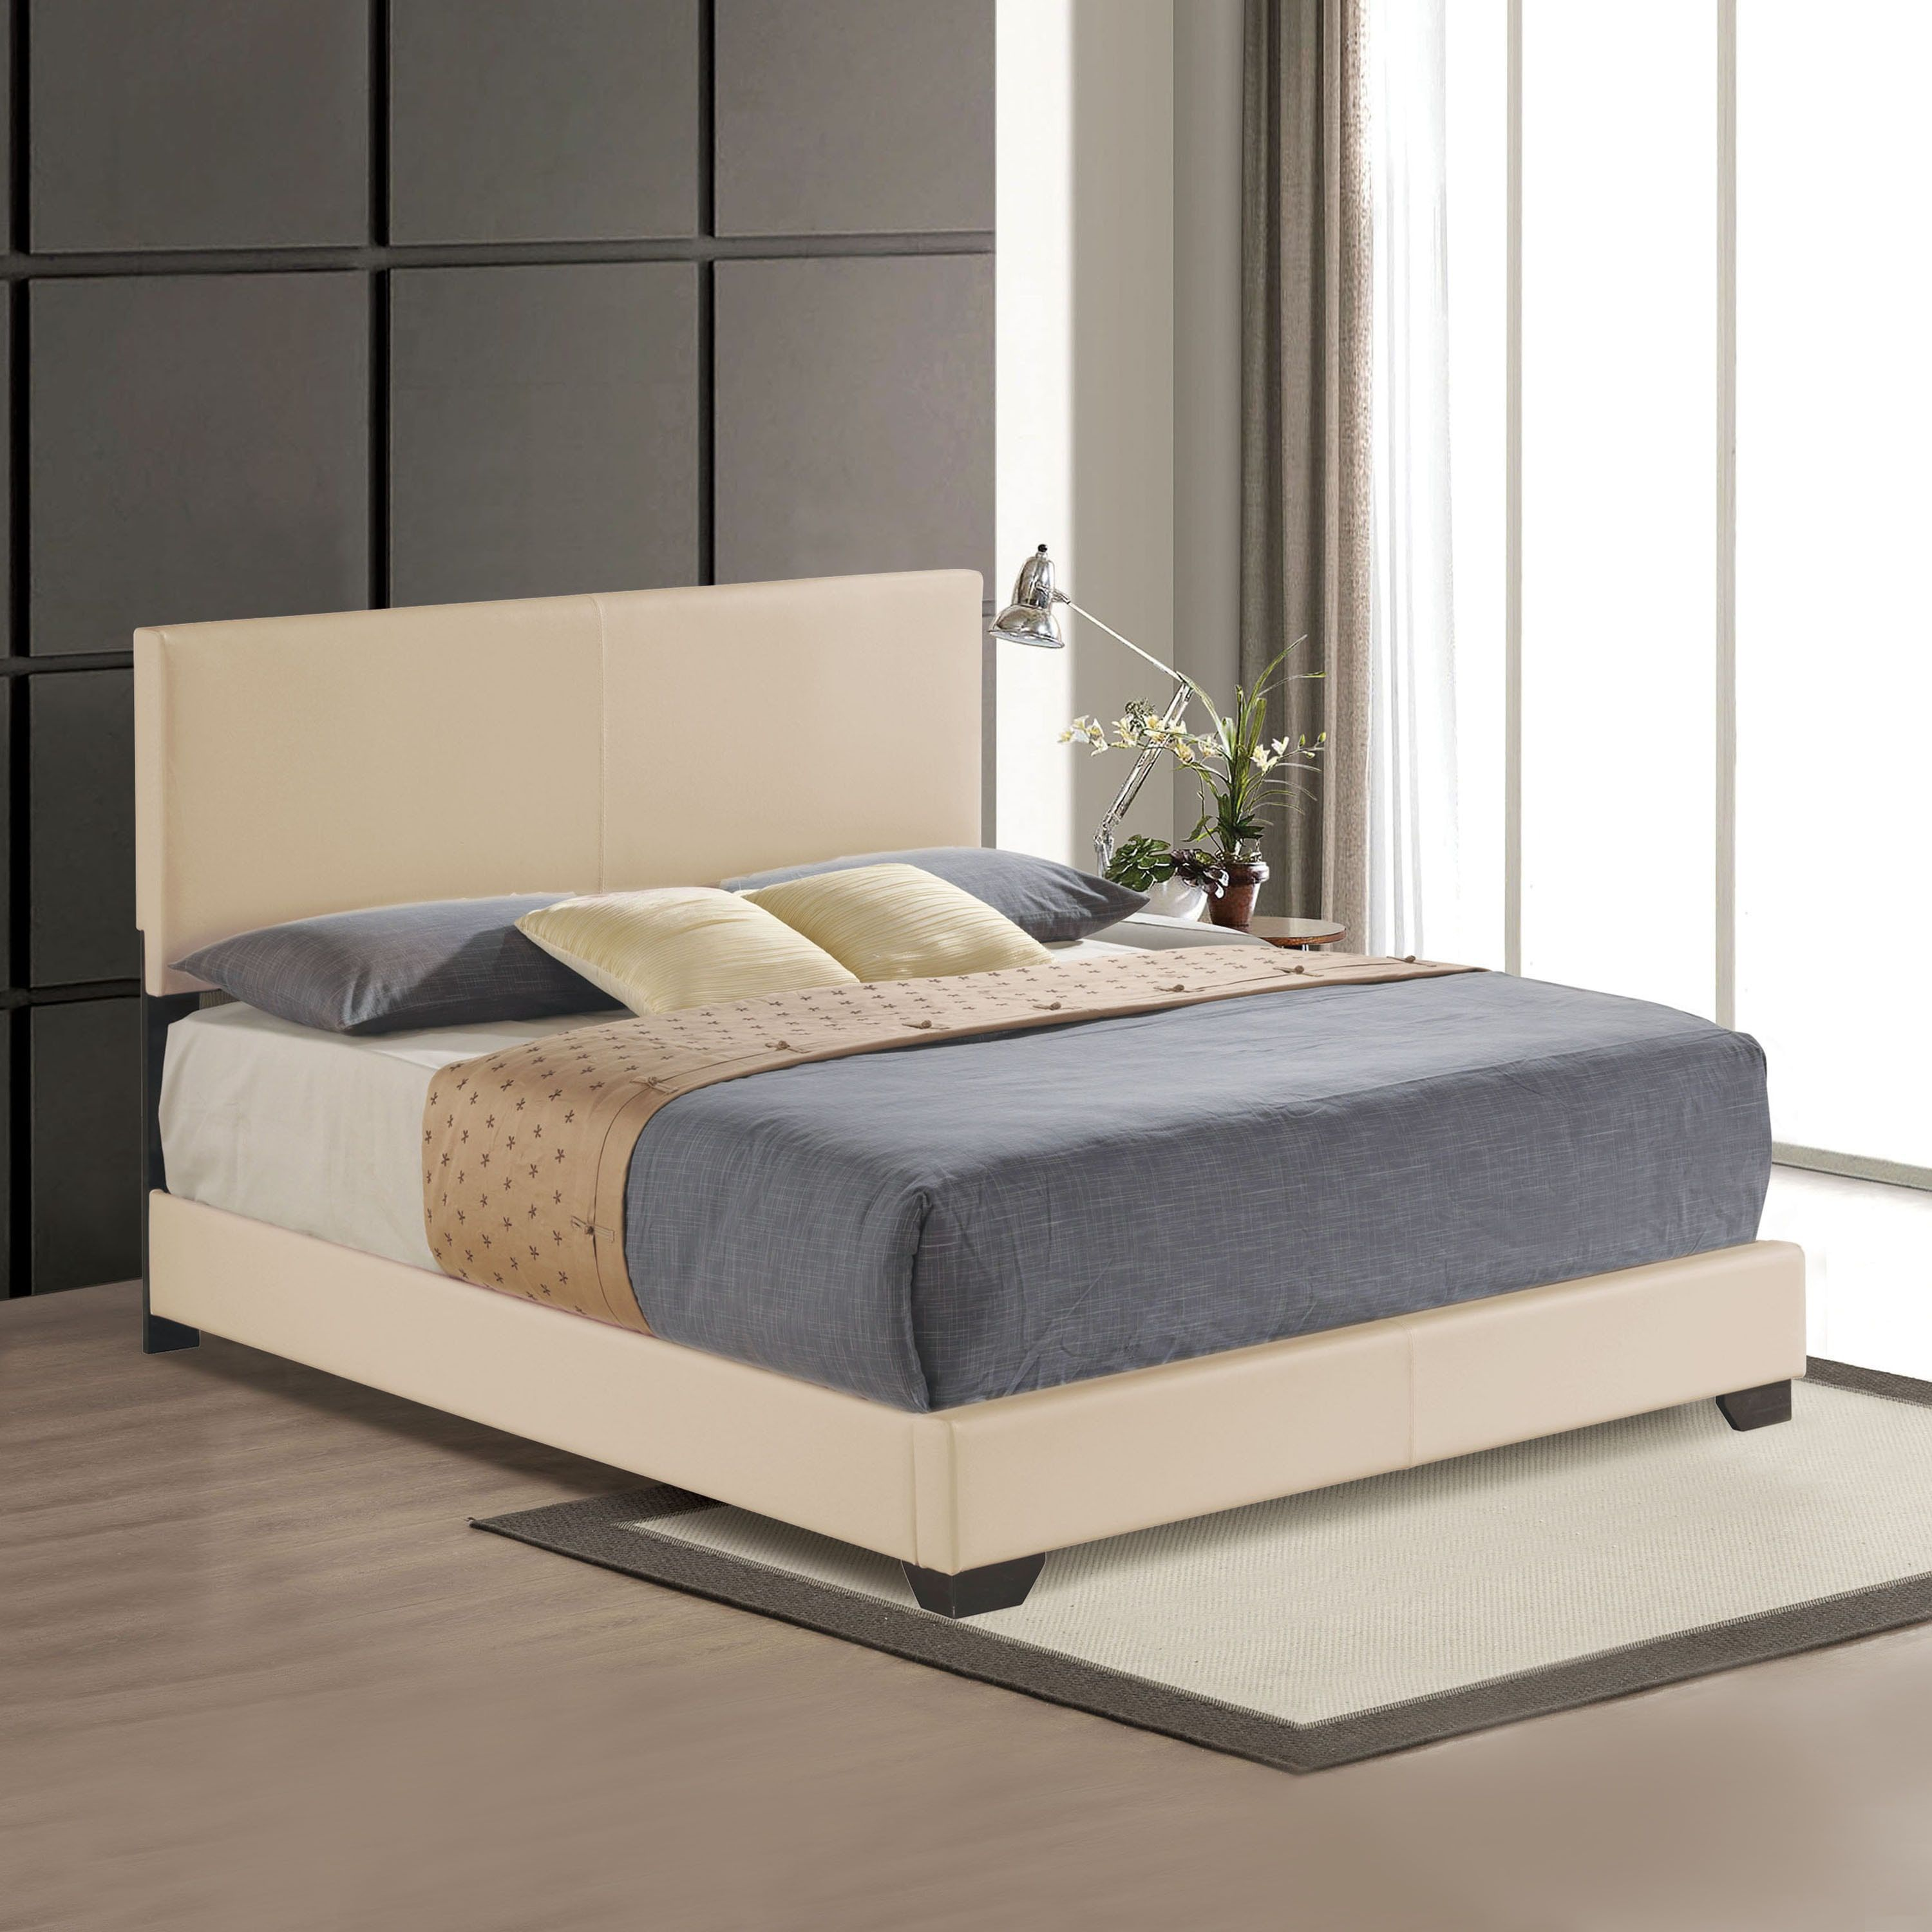 Acme Furniture Ireland Beige Wood Panel Bed (Full/Double